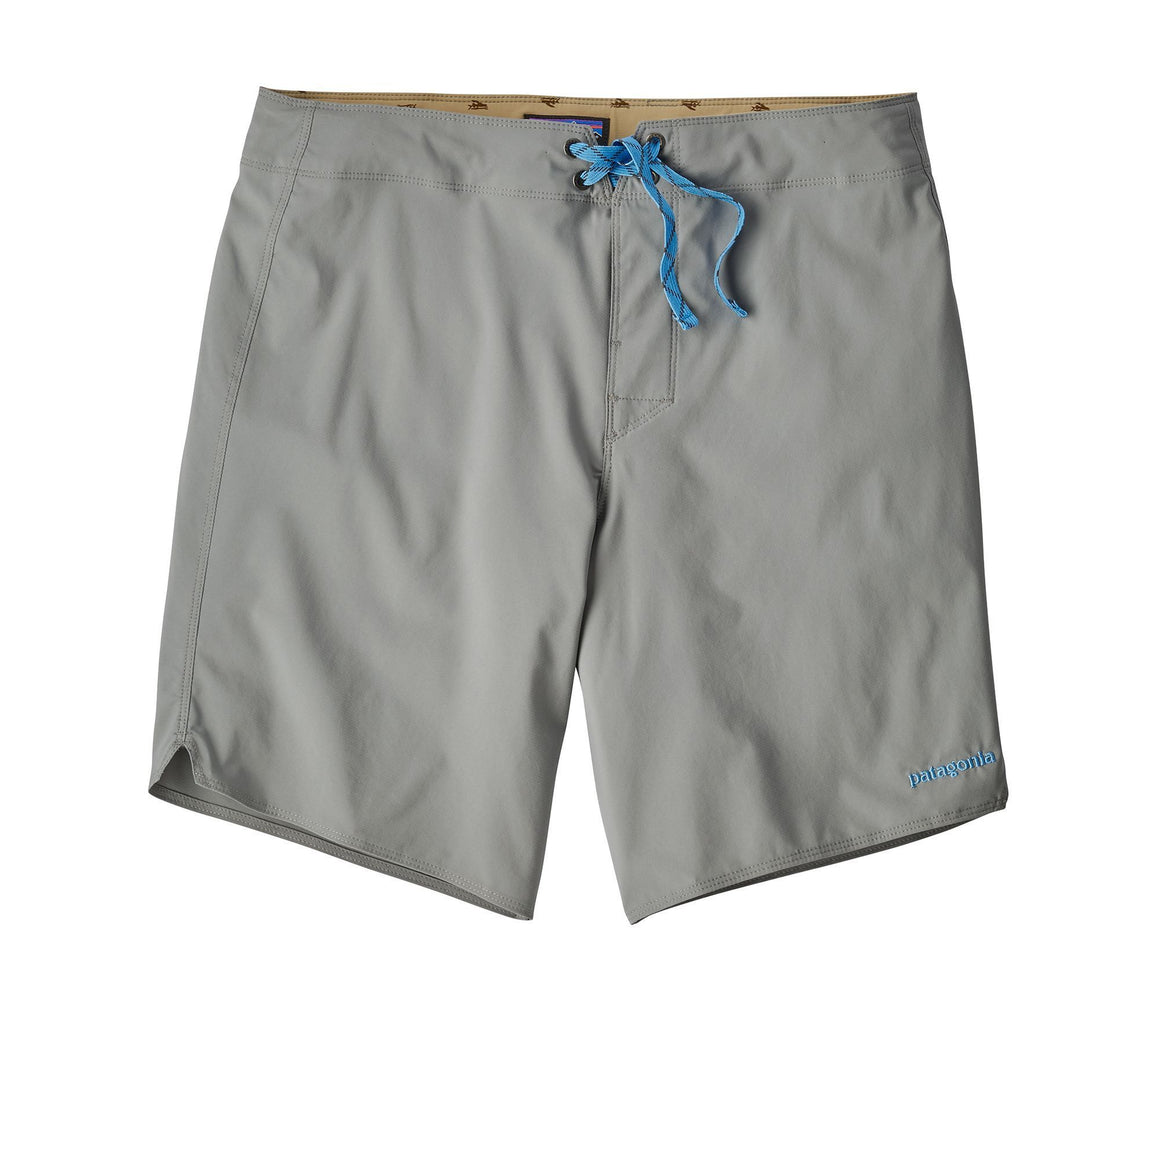 Light And Variable Board Shorts - 18 In. - Feather Grey